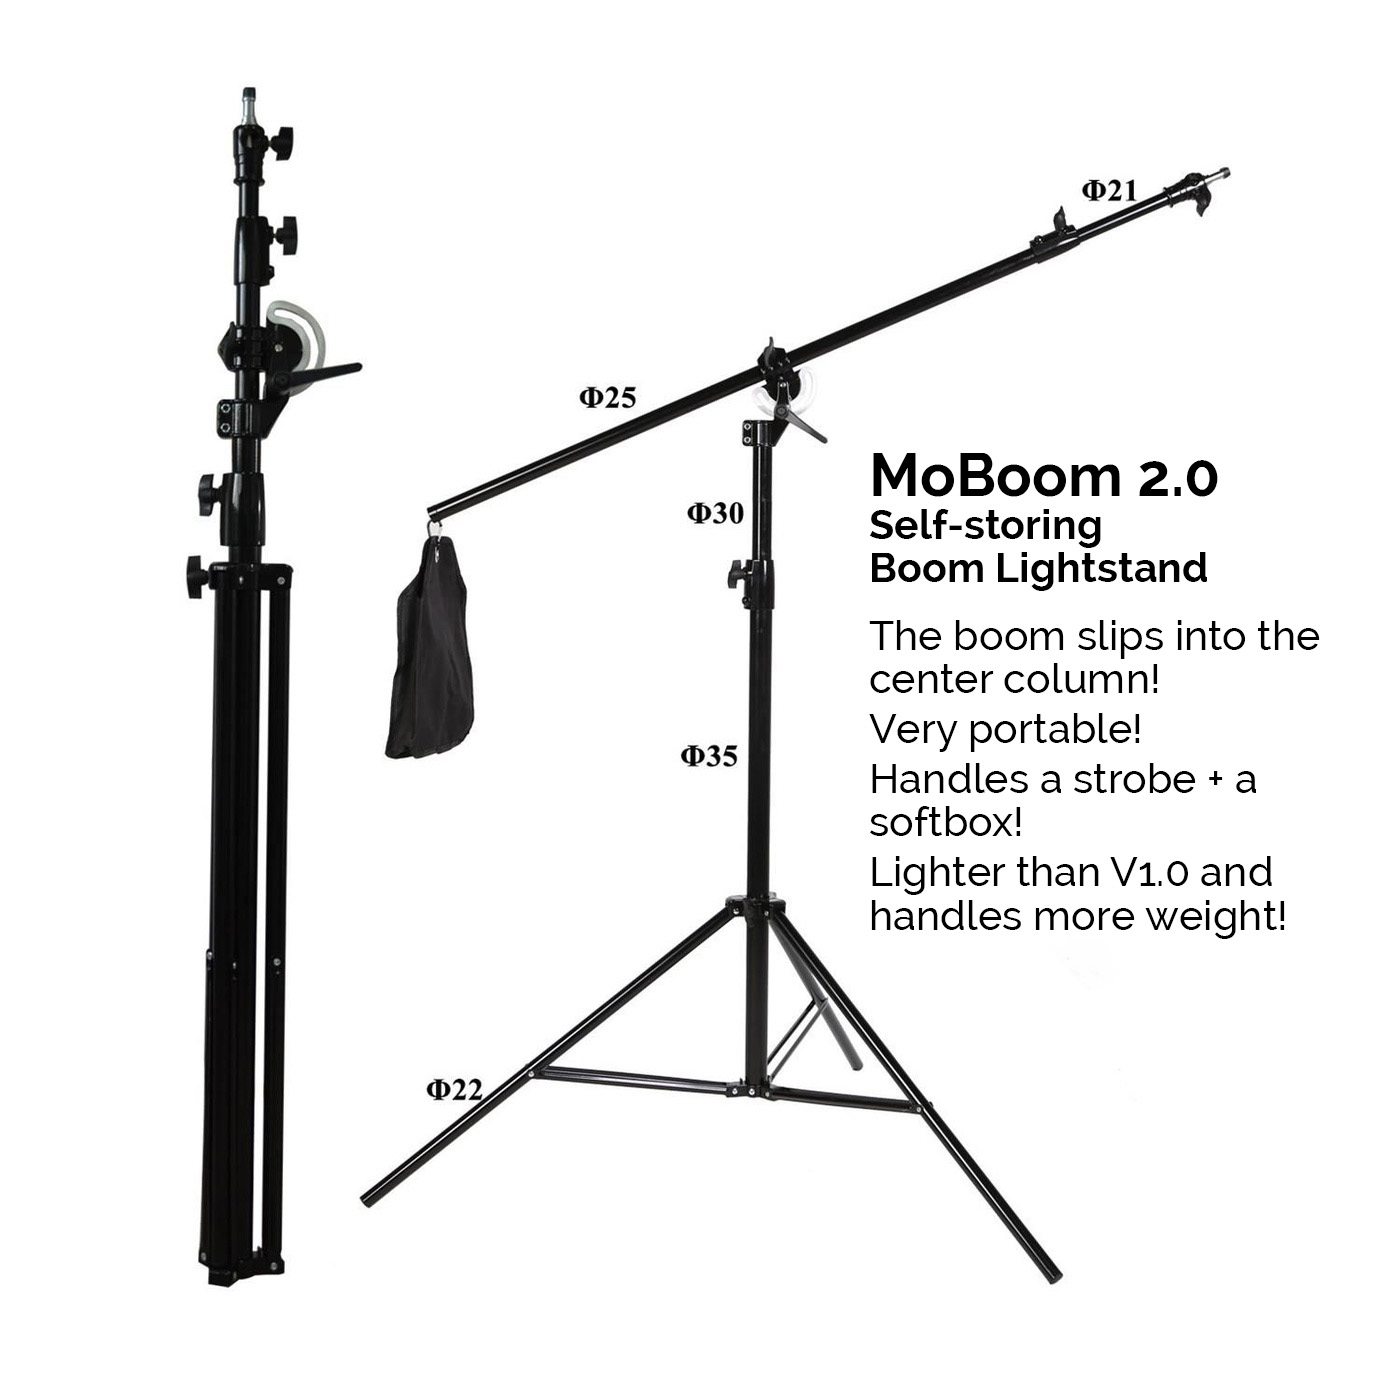 MoBoom 2.0 2in1 Portable Boomed Lightstand